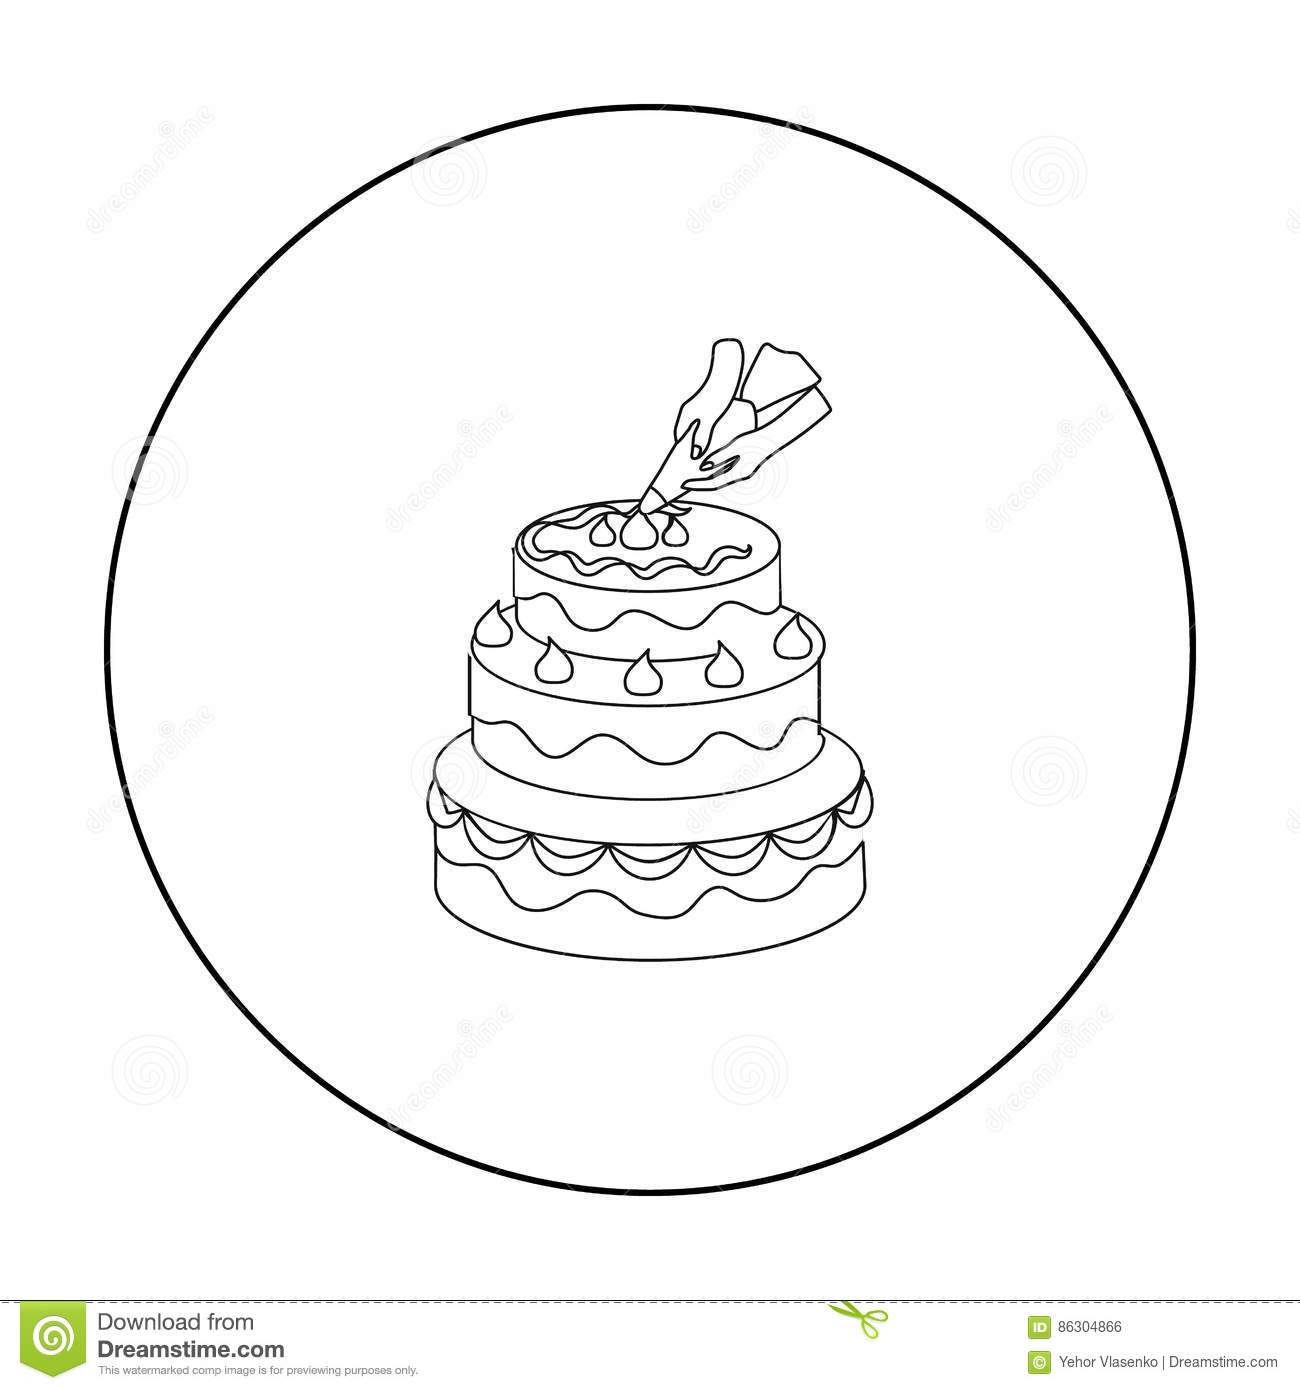 Decorating Of Birthday Cake Icon In Outline Style Isolated